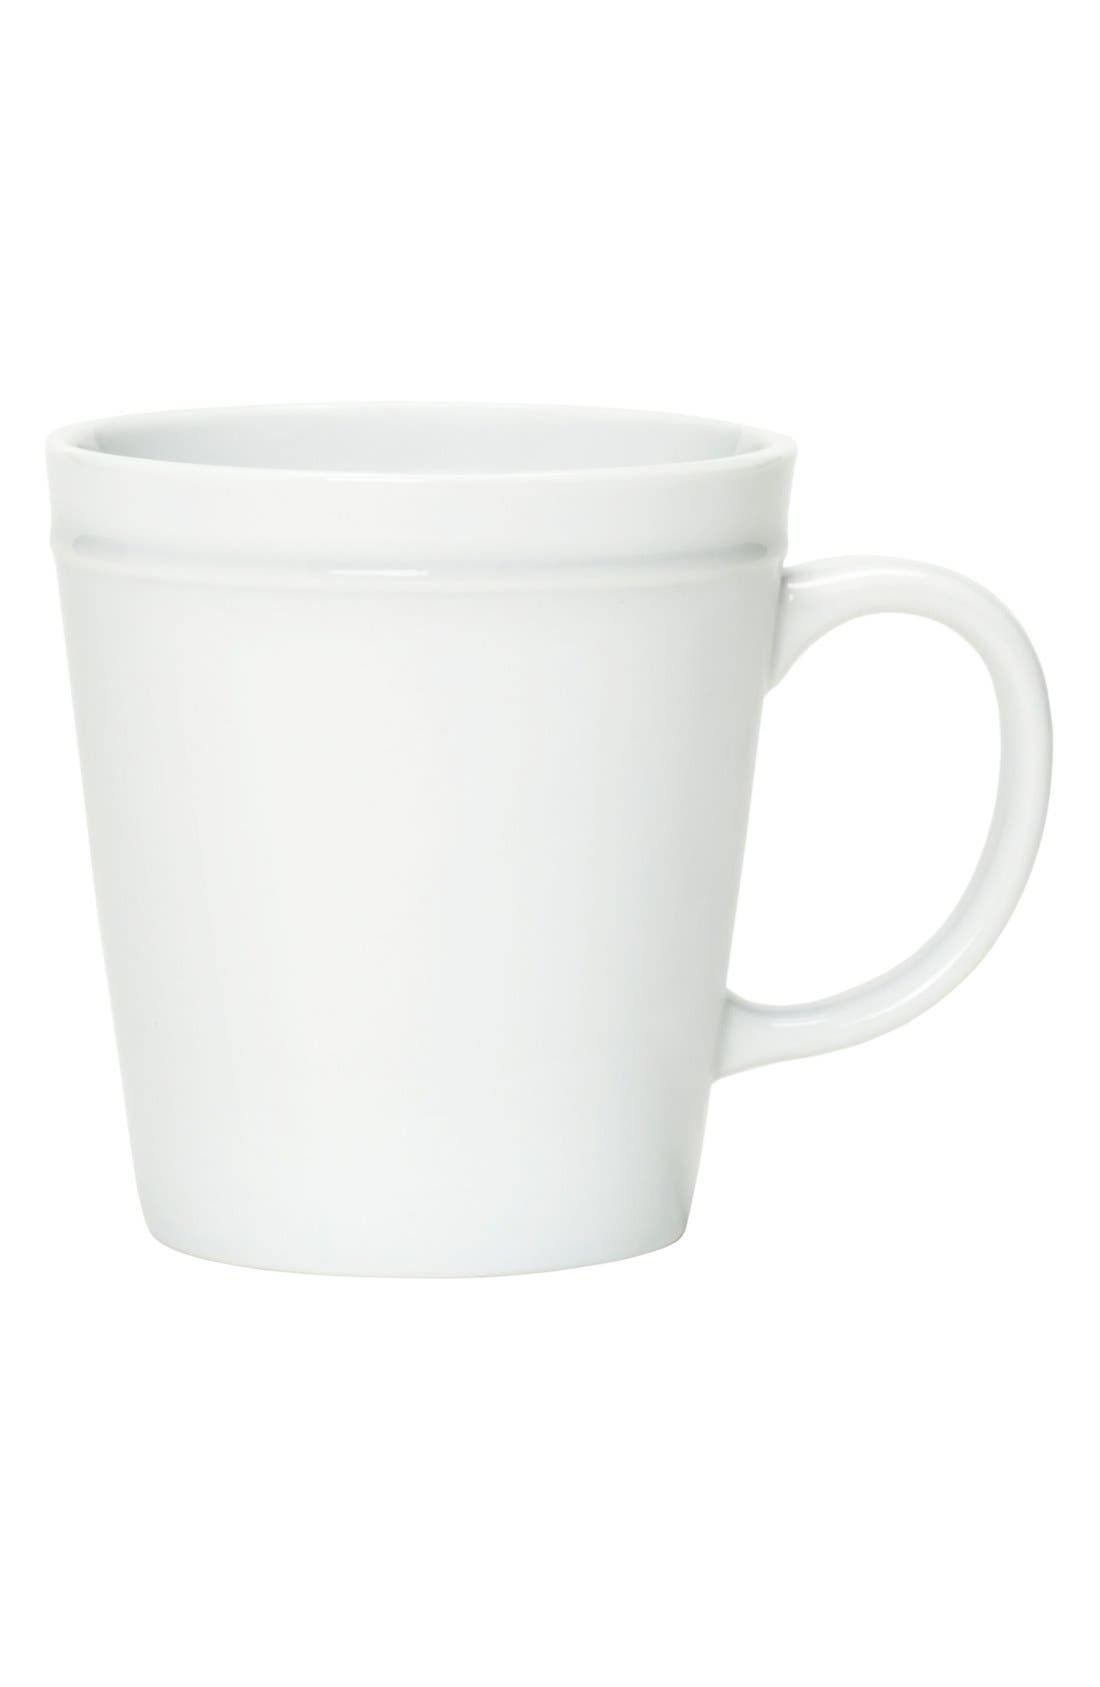 Alternate Image 3  - Nordstrom at Home Madrona Set of 4 Coffee Mugs ($32 Value)